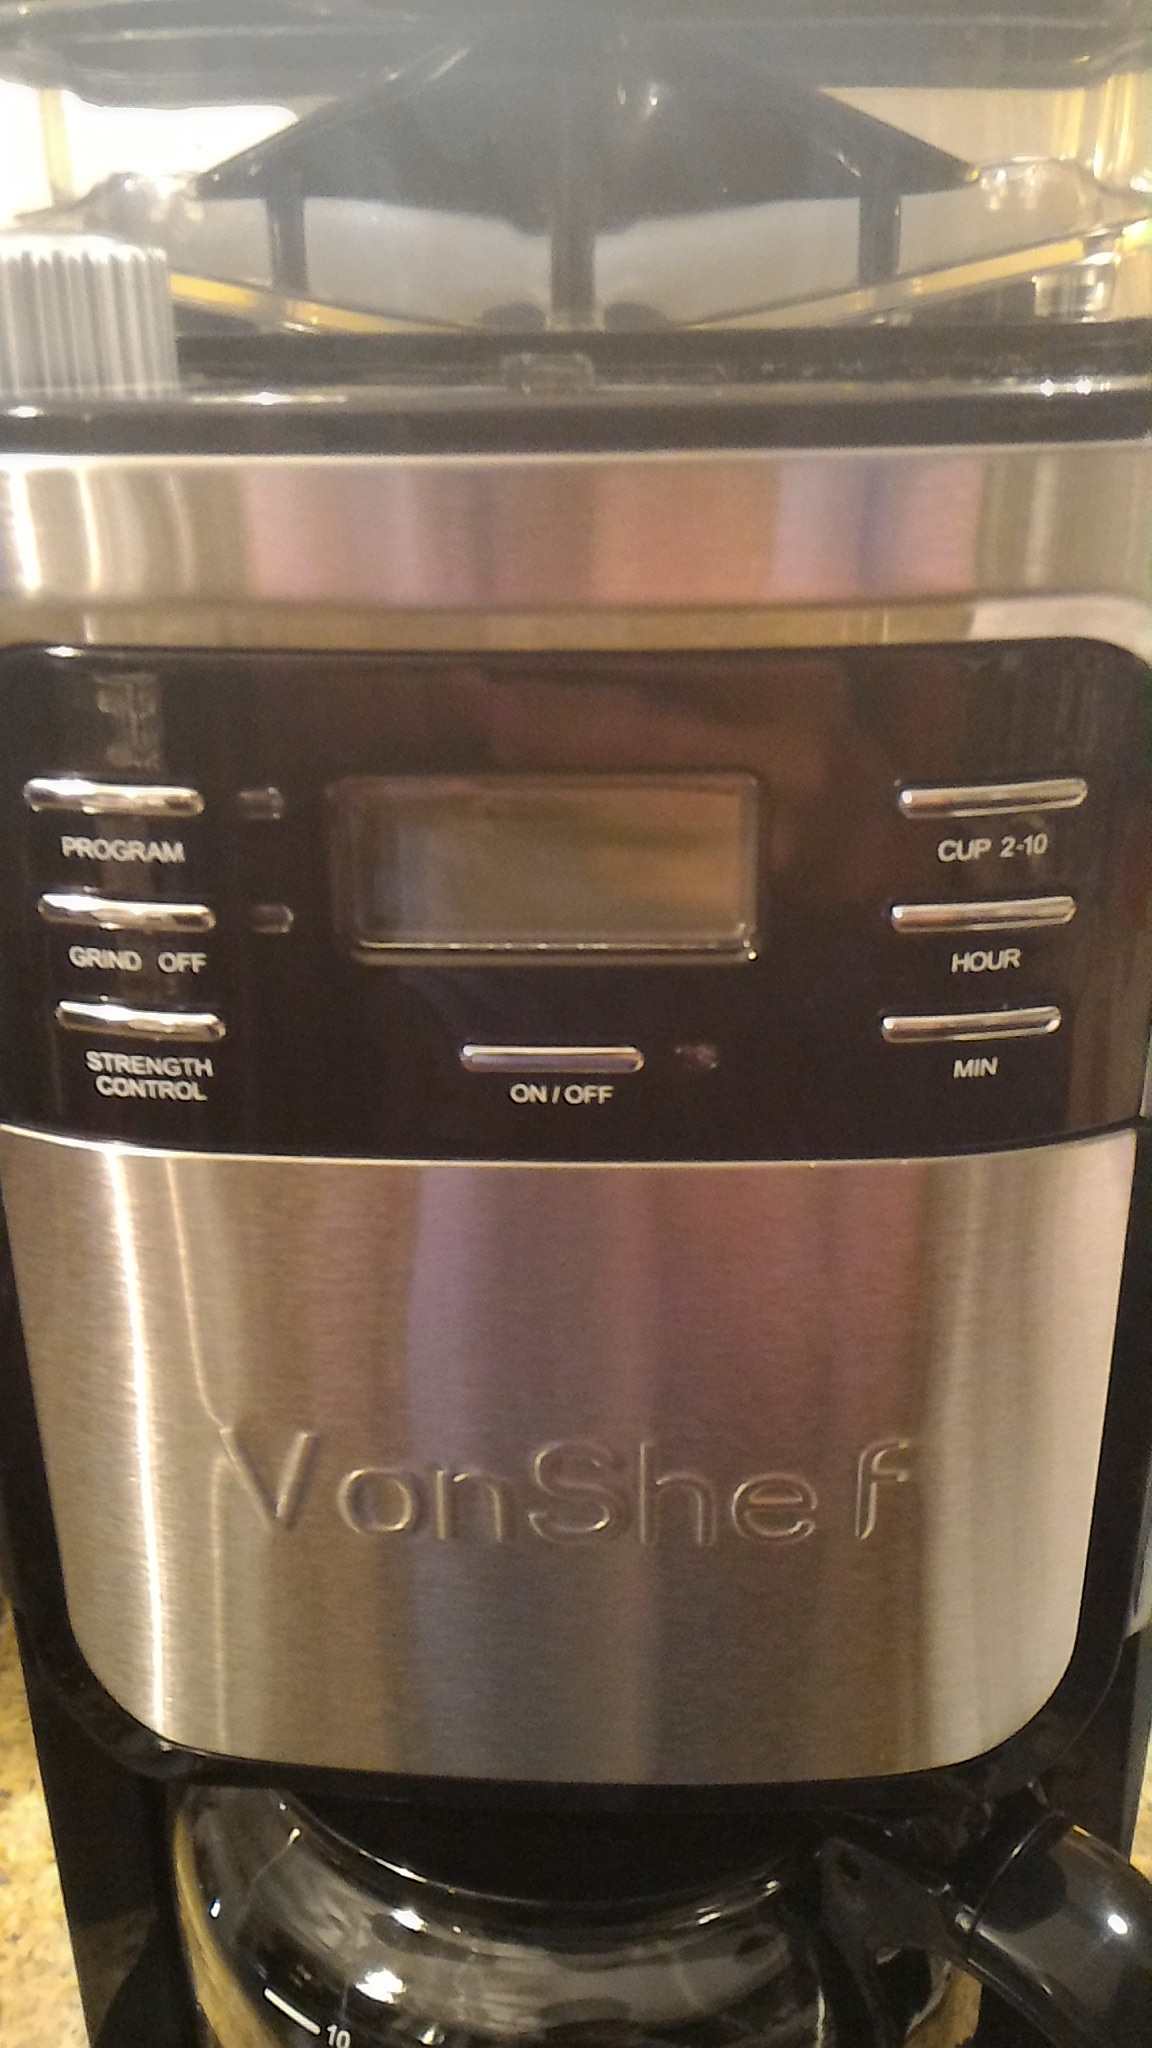 Coffee Maker Built In Grinder Reviews : VonShef 900W 10 Cup Digital Filter Coffee Maker with Built-in Grinder and Reusable Filter ...